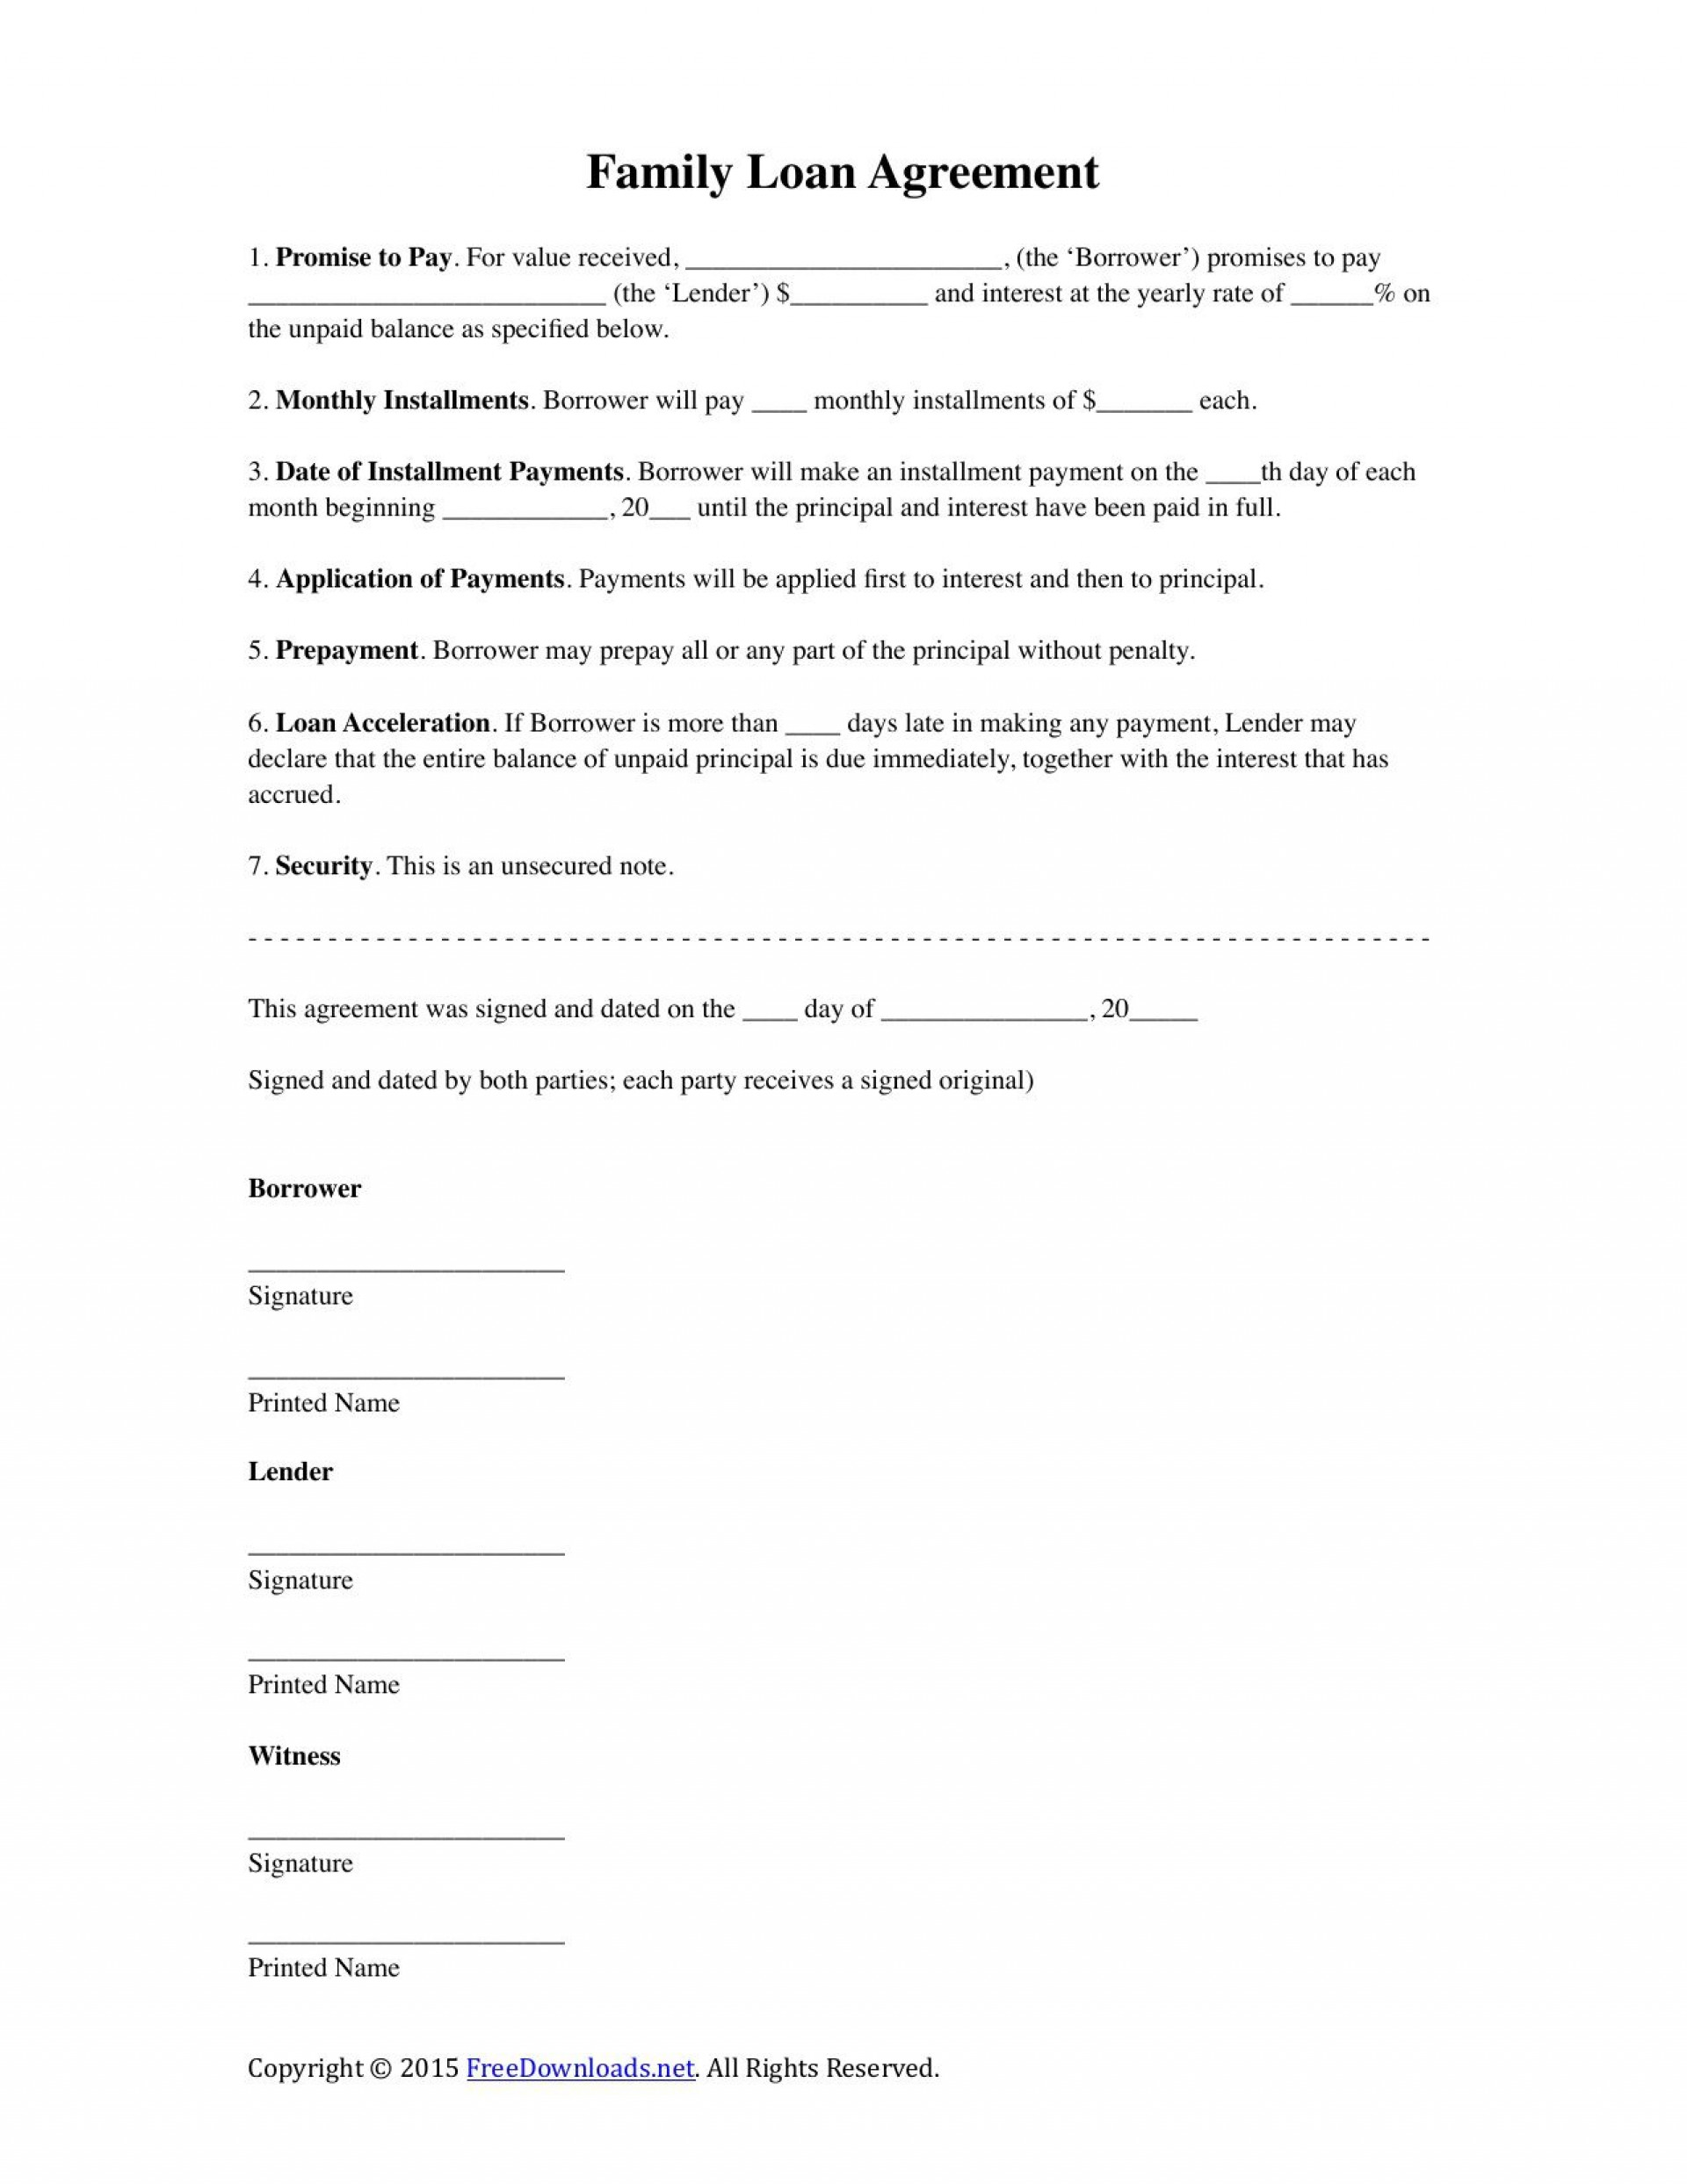 002 Stunning Family Loan Agreement Template Highest Clarity  Nz Uk Free1920